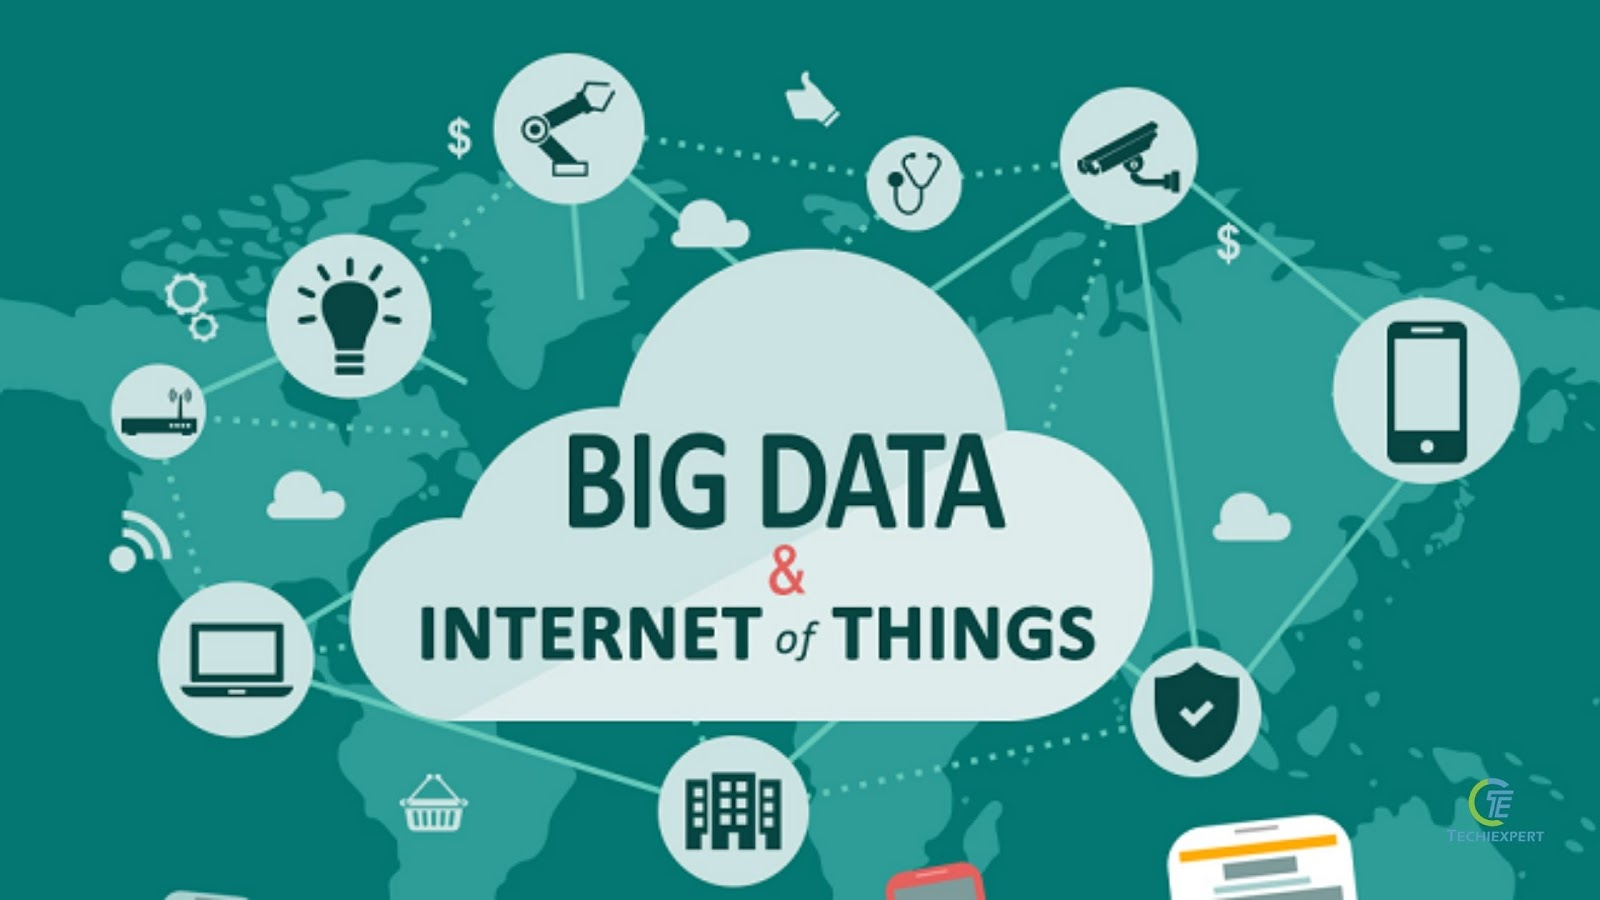 Getting a tremendous Volume of Information from the Big Data Platform